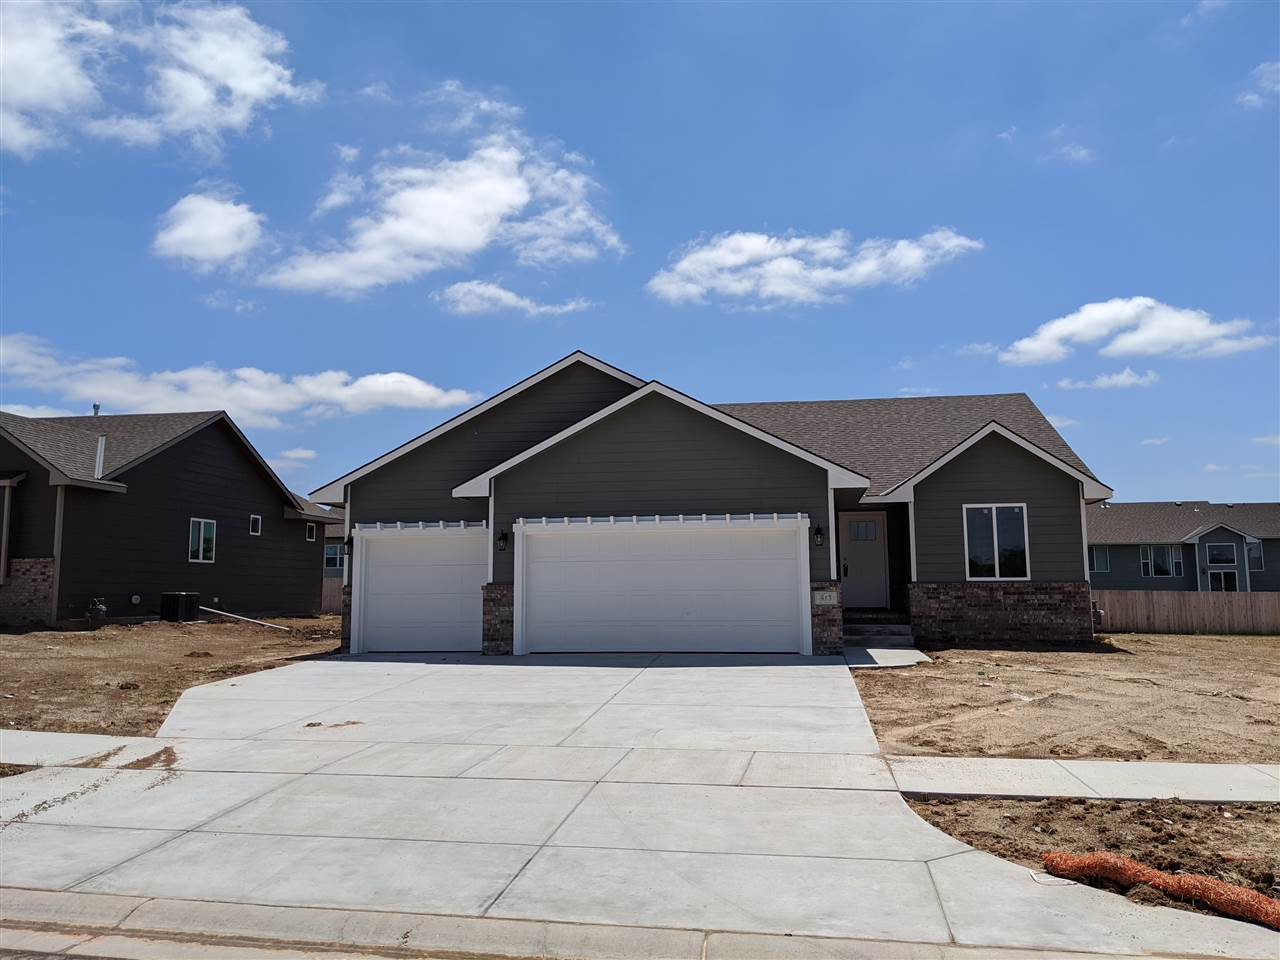 Comfort Homes Brook Jr Plan is a must see if you are looking for a 2-Bedroom plan on the main level.